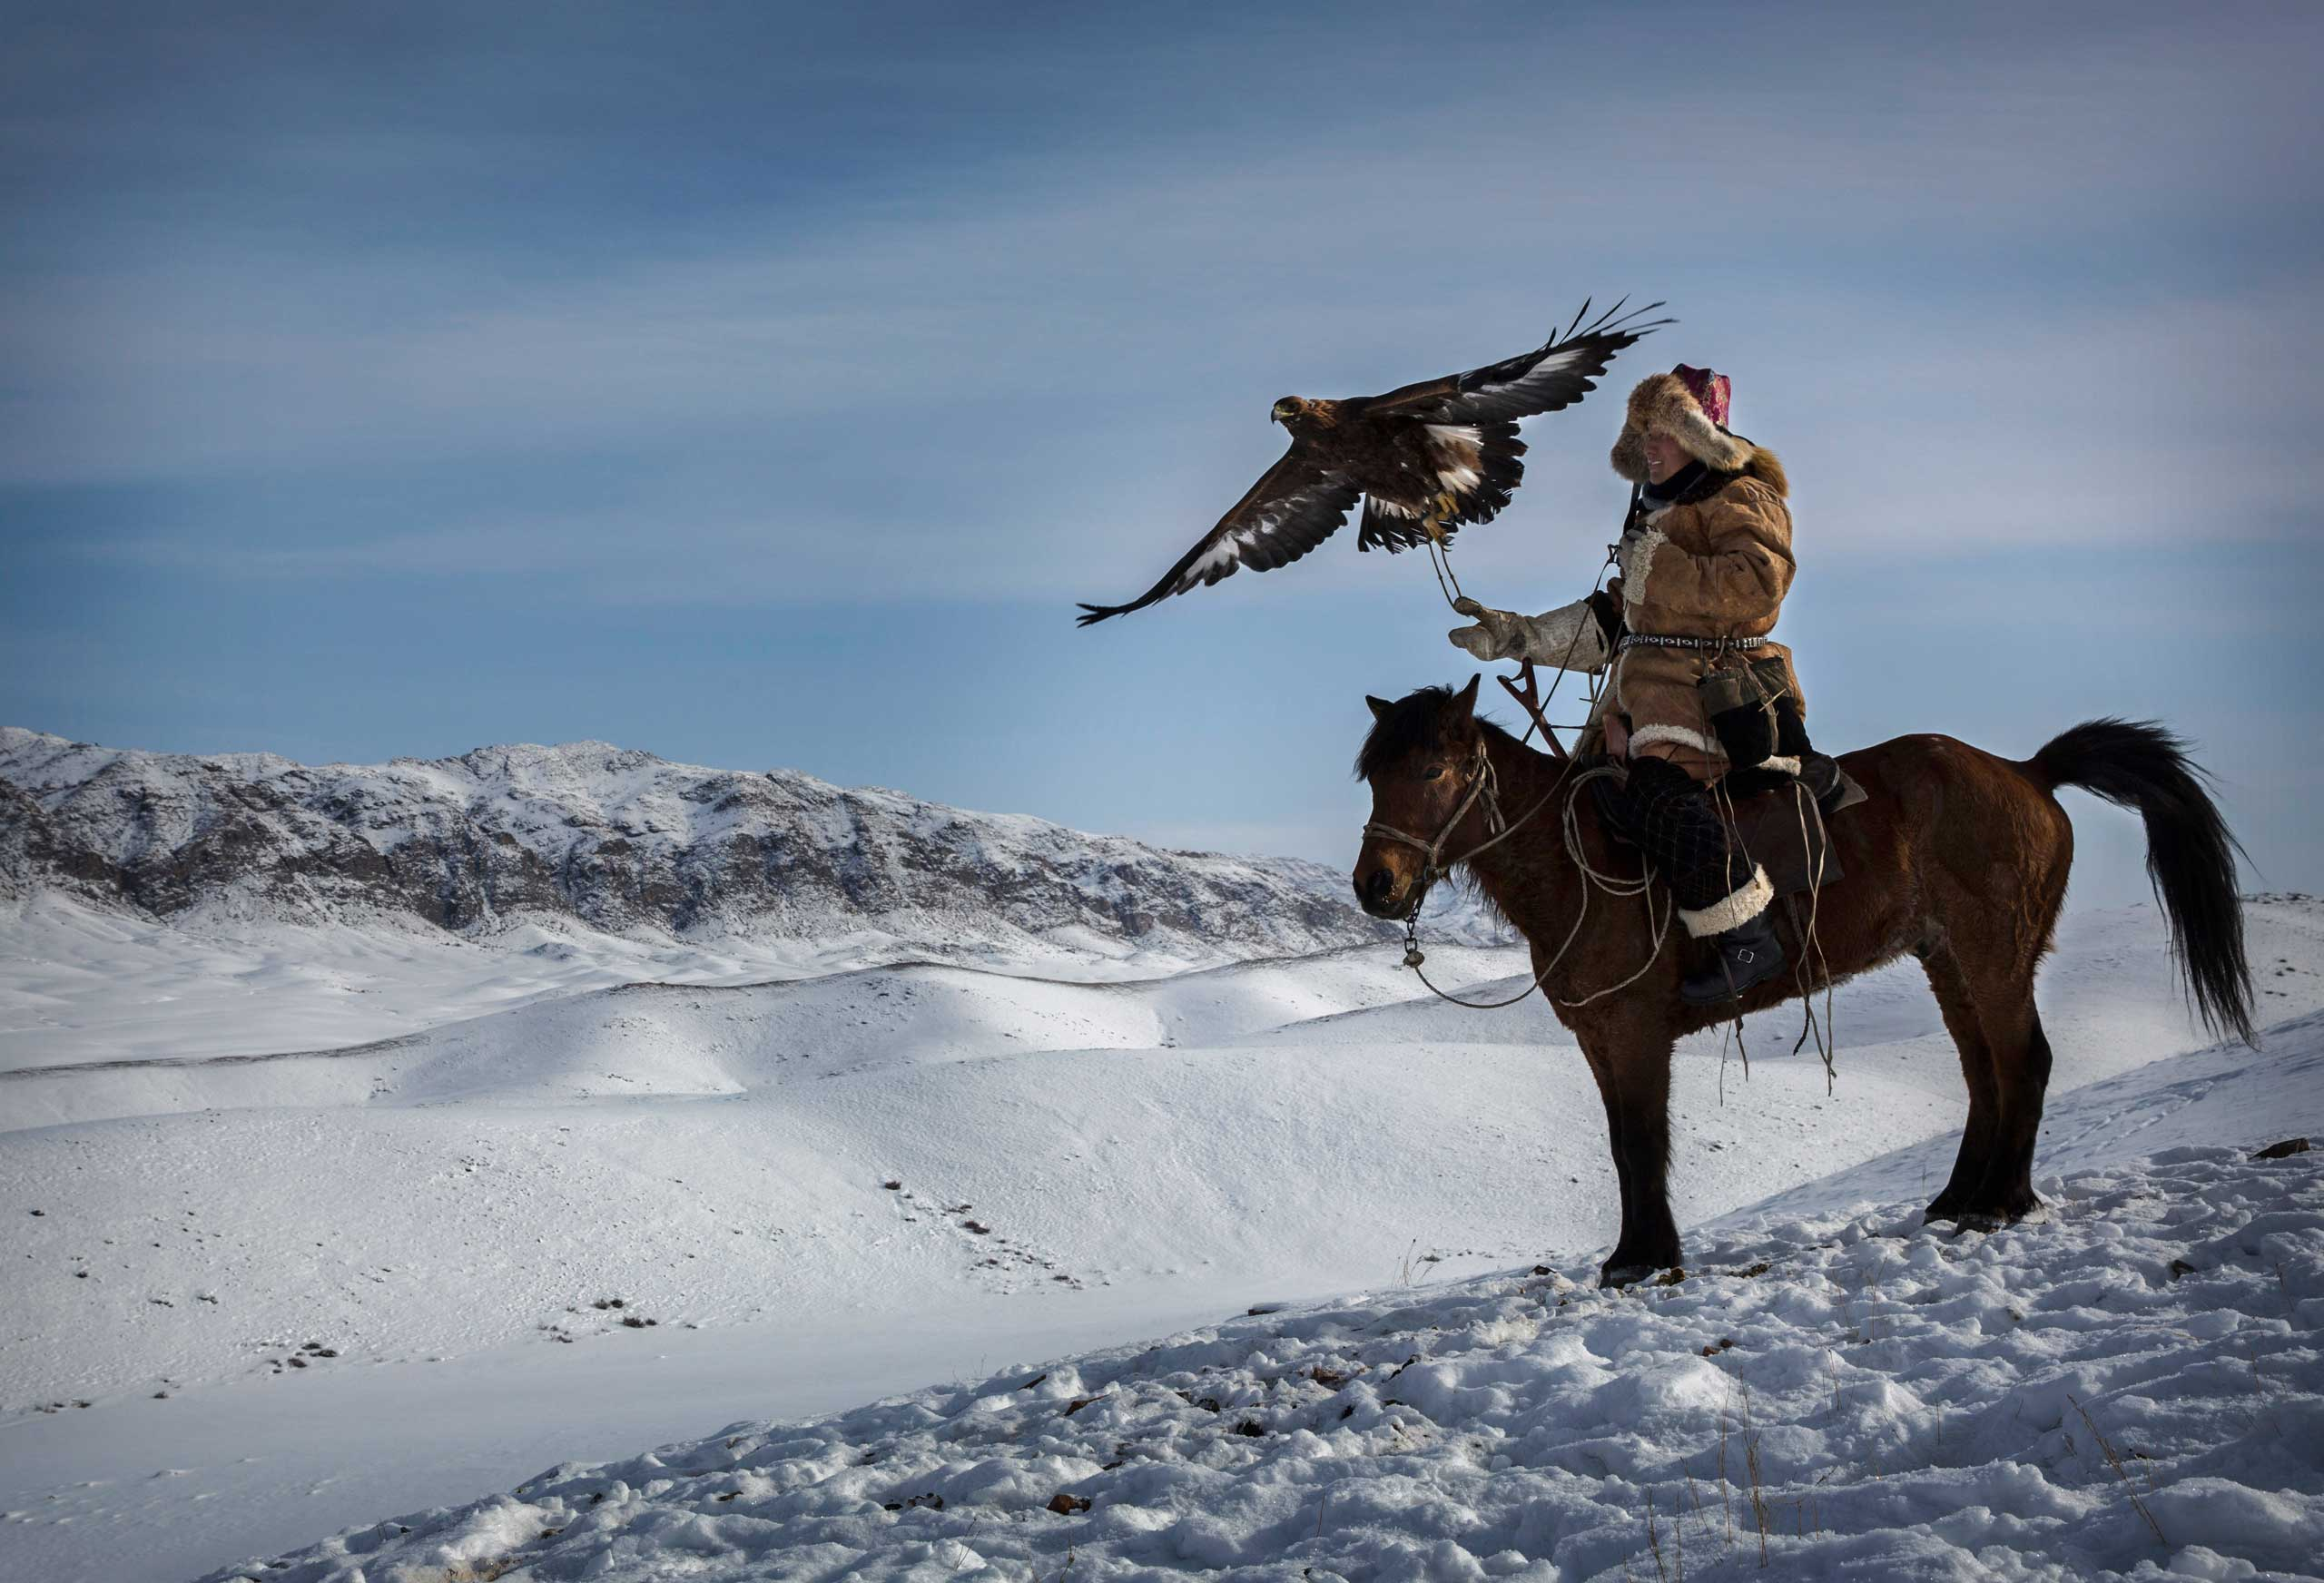 Chinese Kazakh eagle hunter releases his eagle during the competition in the mountains of Qinghe County, Xinjiang, northwestern China.